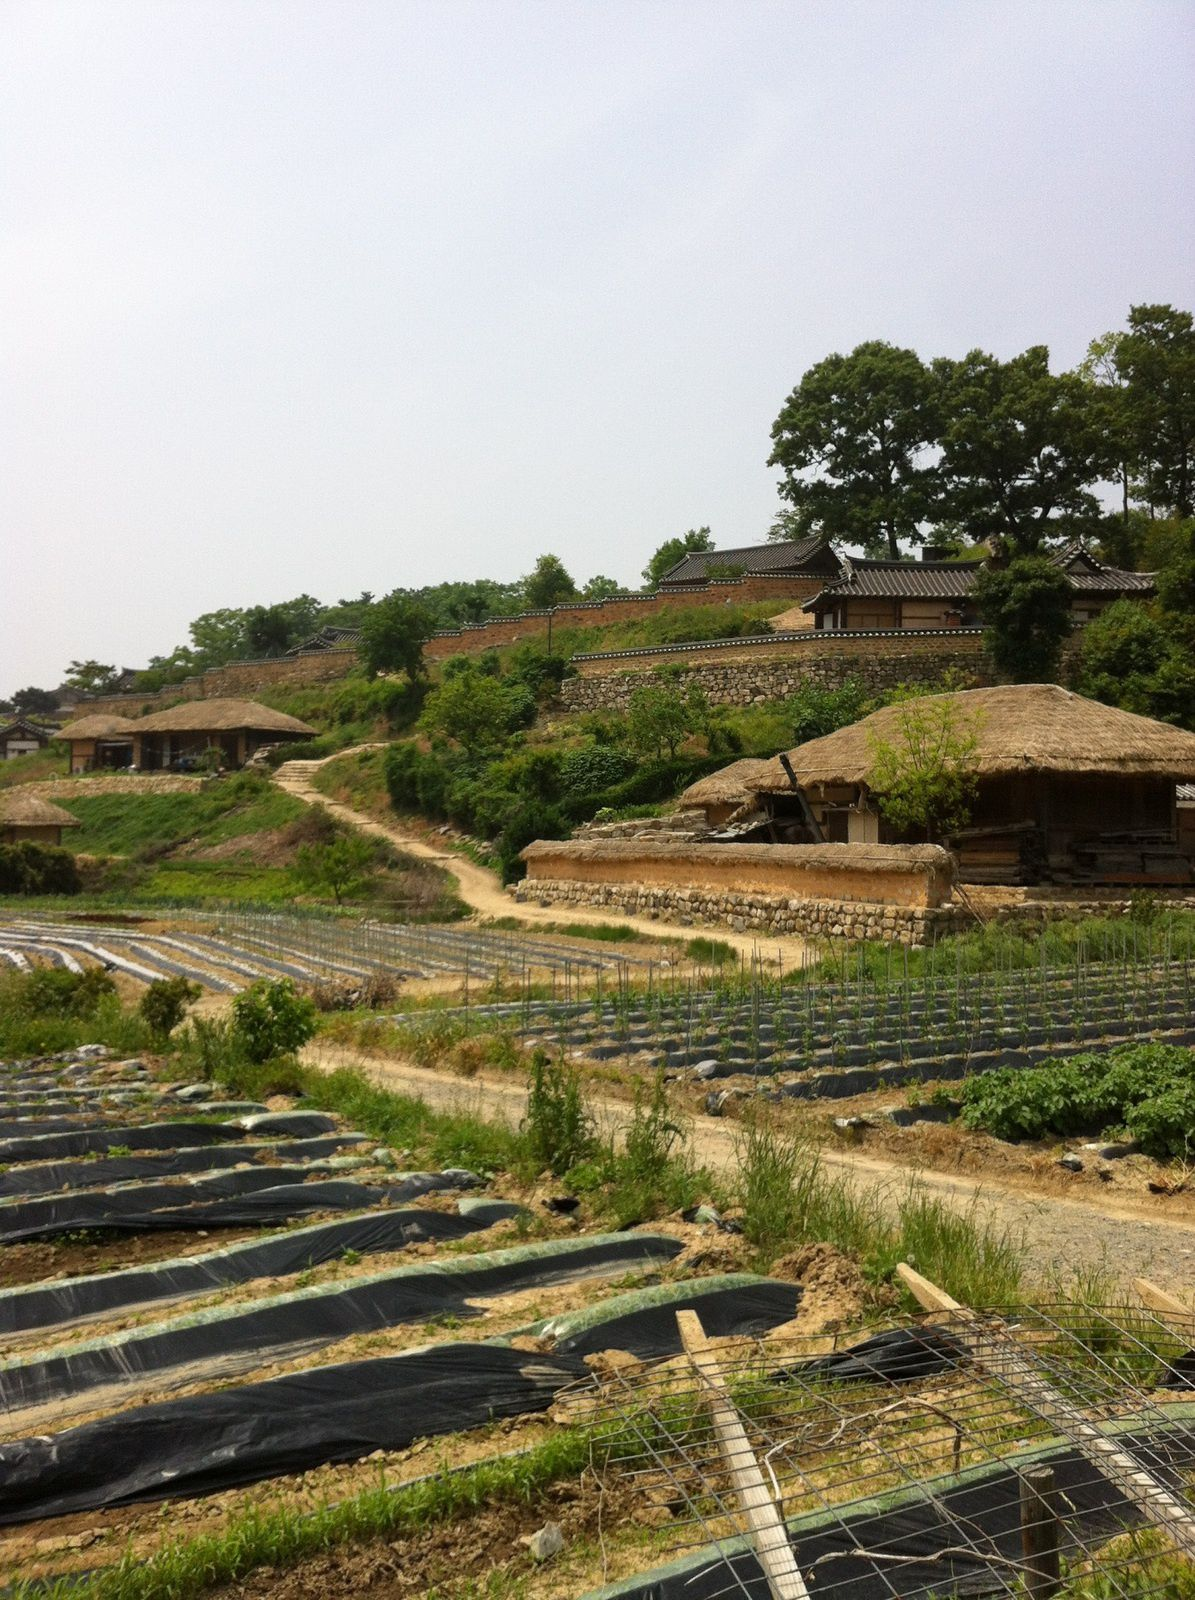 COREE : VILLAGE FOLKLORIQUE DE YANGDONG